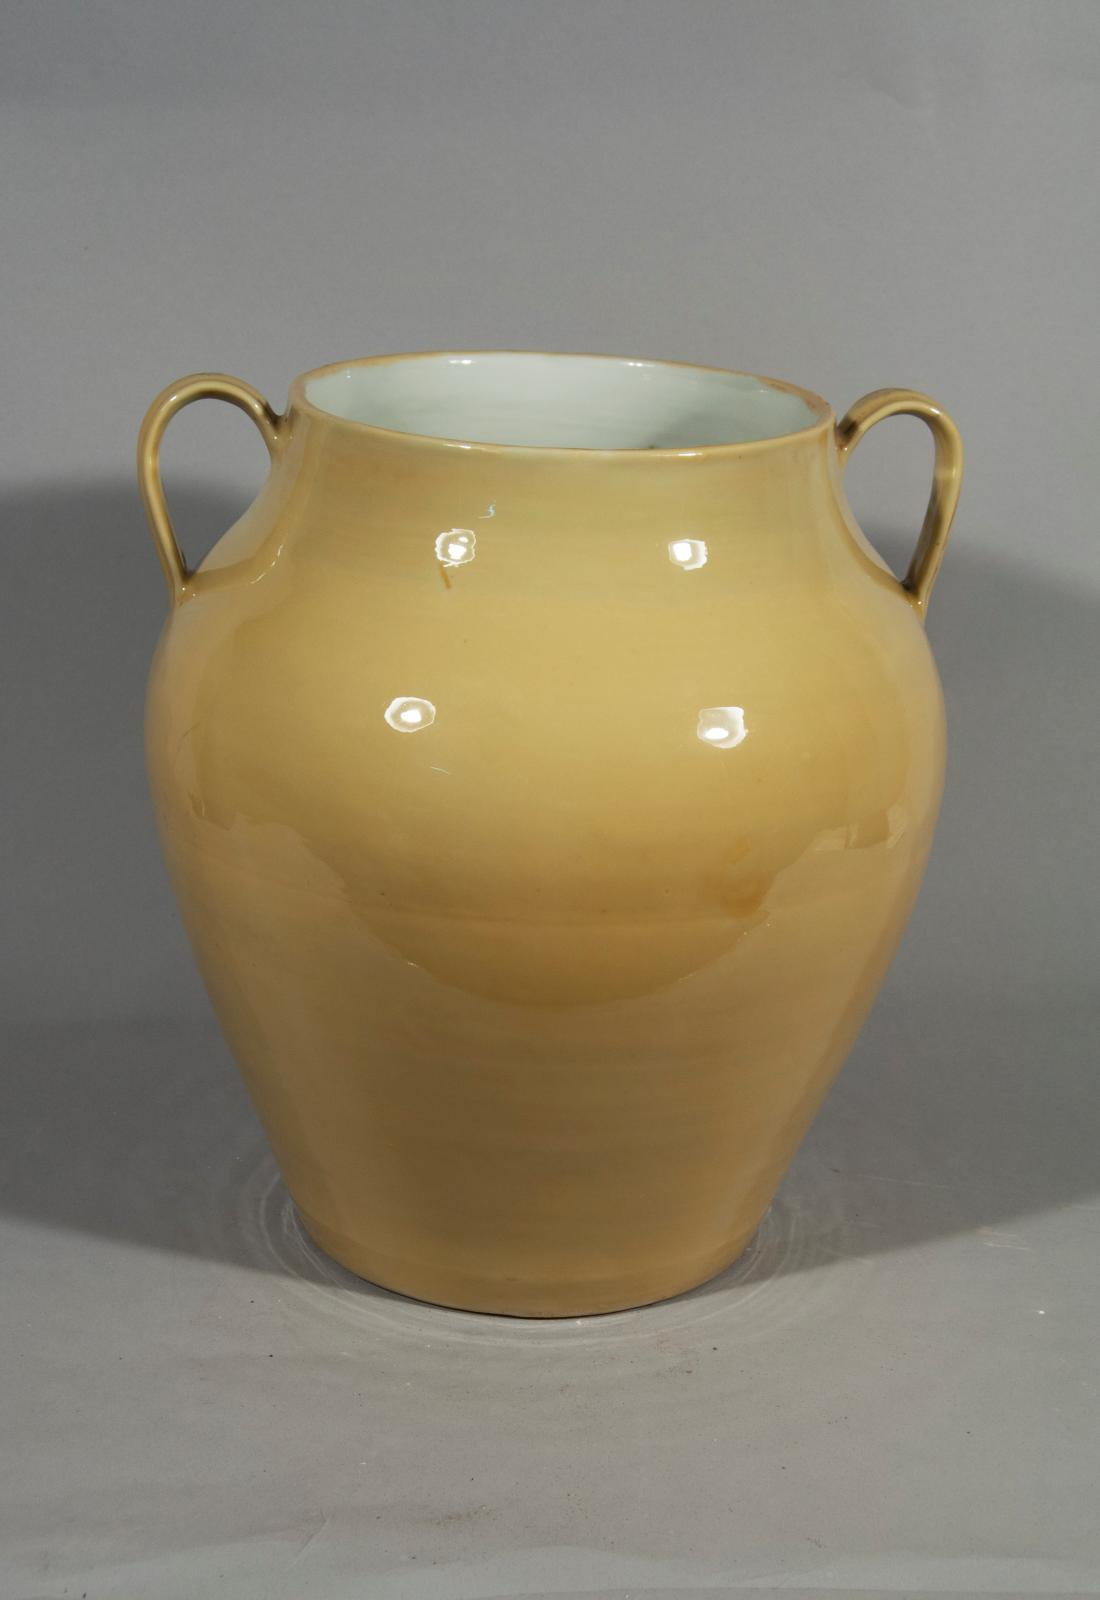 Early Ming jar, its lid in form of a lotus leaf. Vessels of thisyellow-gold were reserved for the Imperial court. (Image courtesy of the Nanjing Museum)